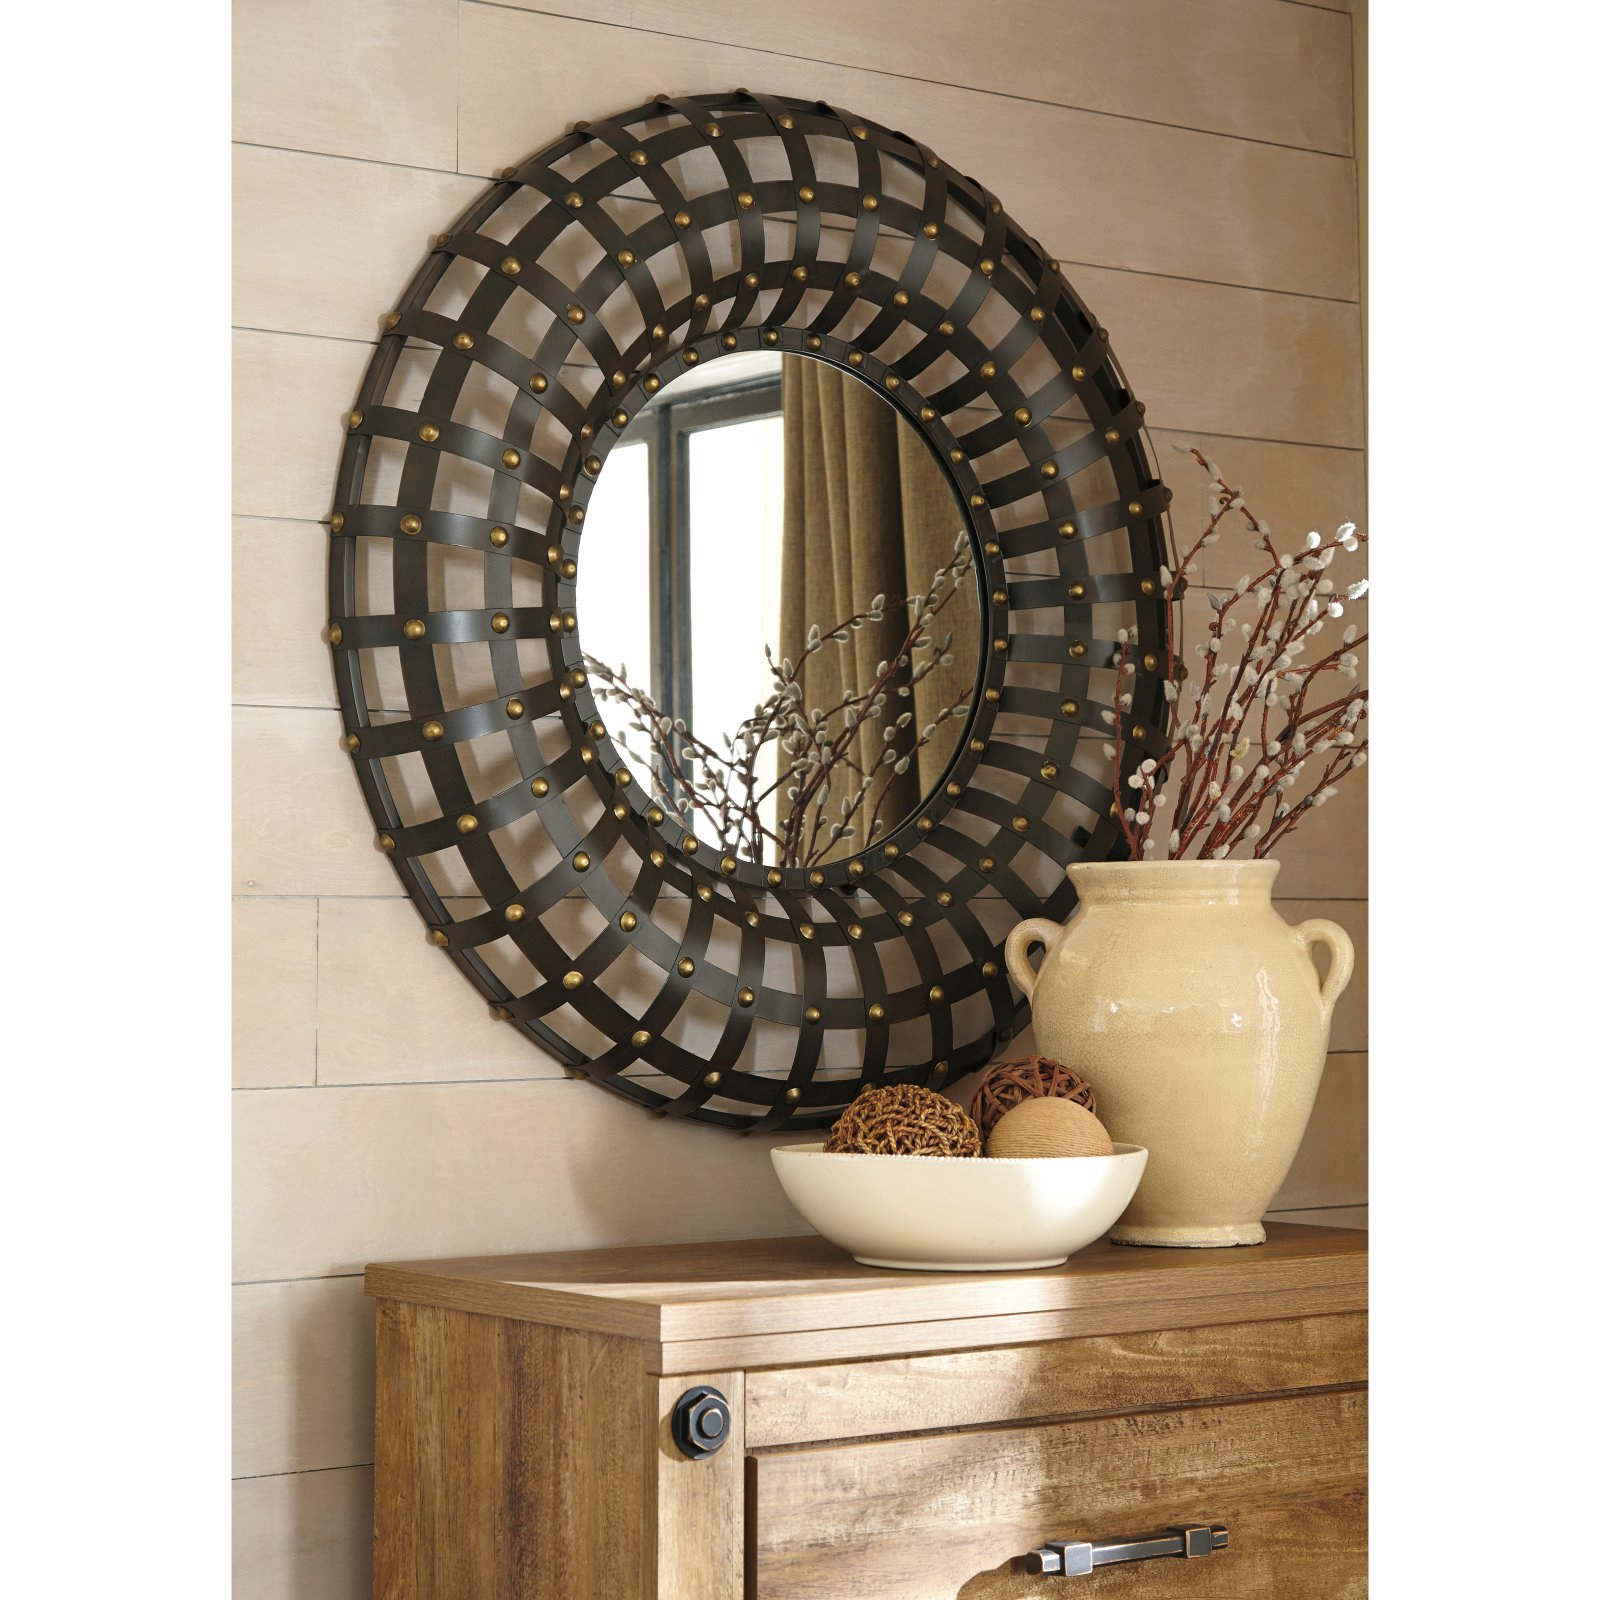 Signature Designashley Ogier Accent Wall Mirror – 36.25W X 36.25H In (Image 20 of 20)